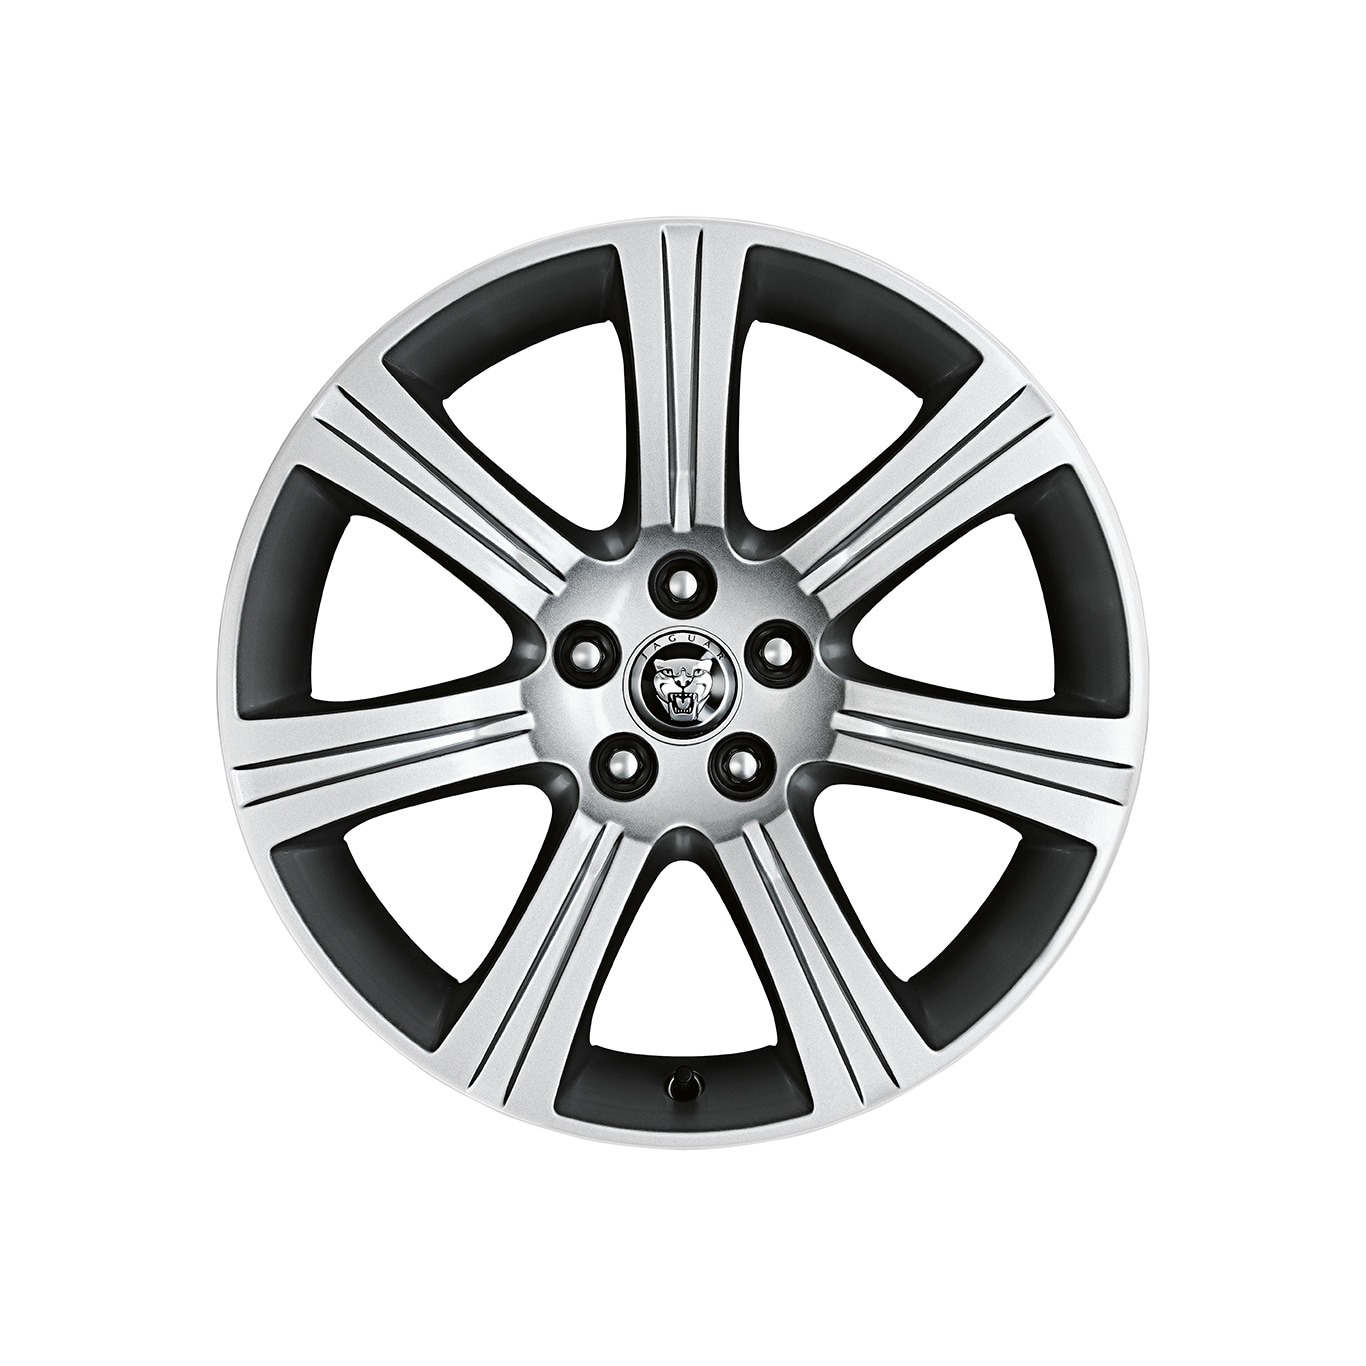 "Alloy Wheel - 18"" Style 7017, 7 spoke, Front"